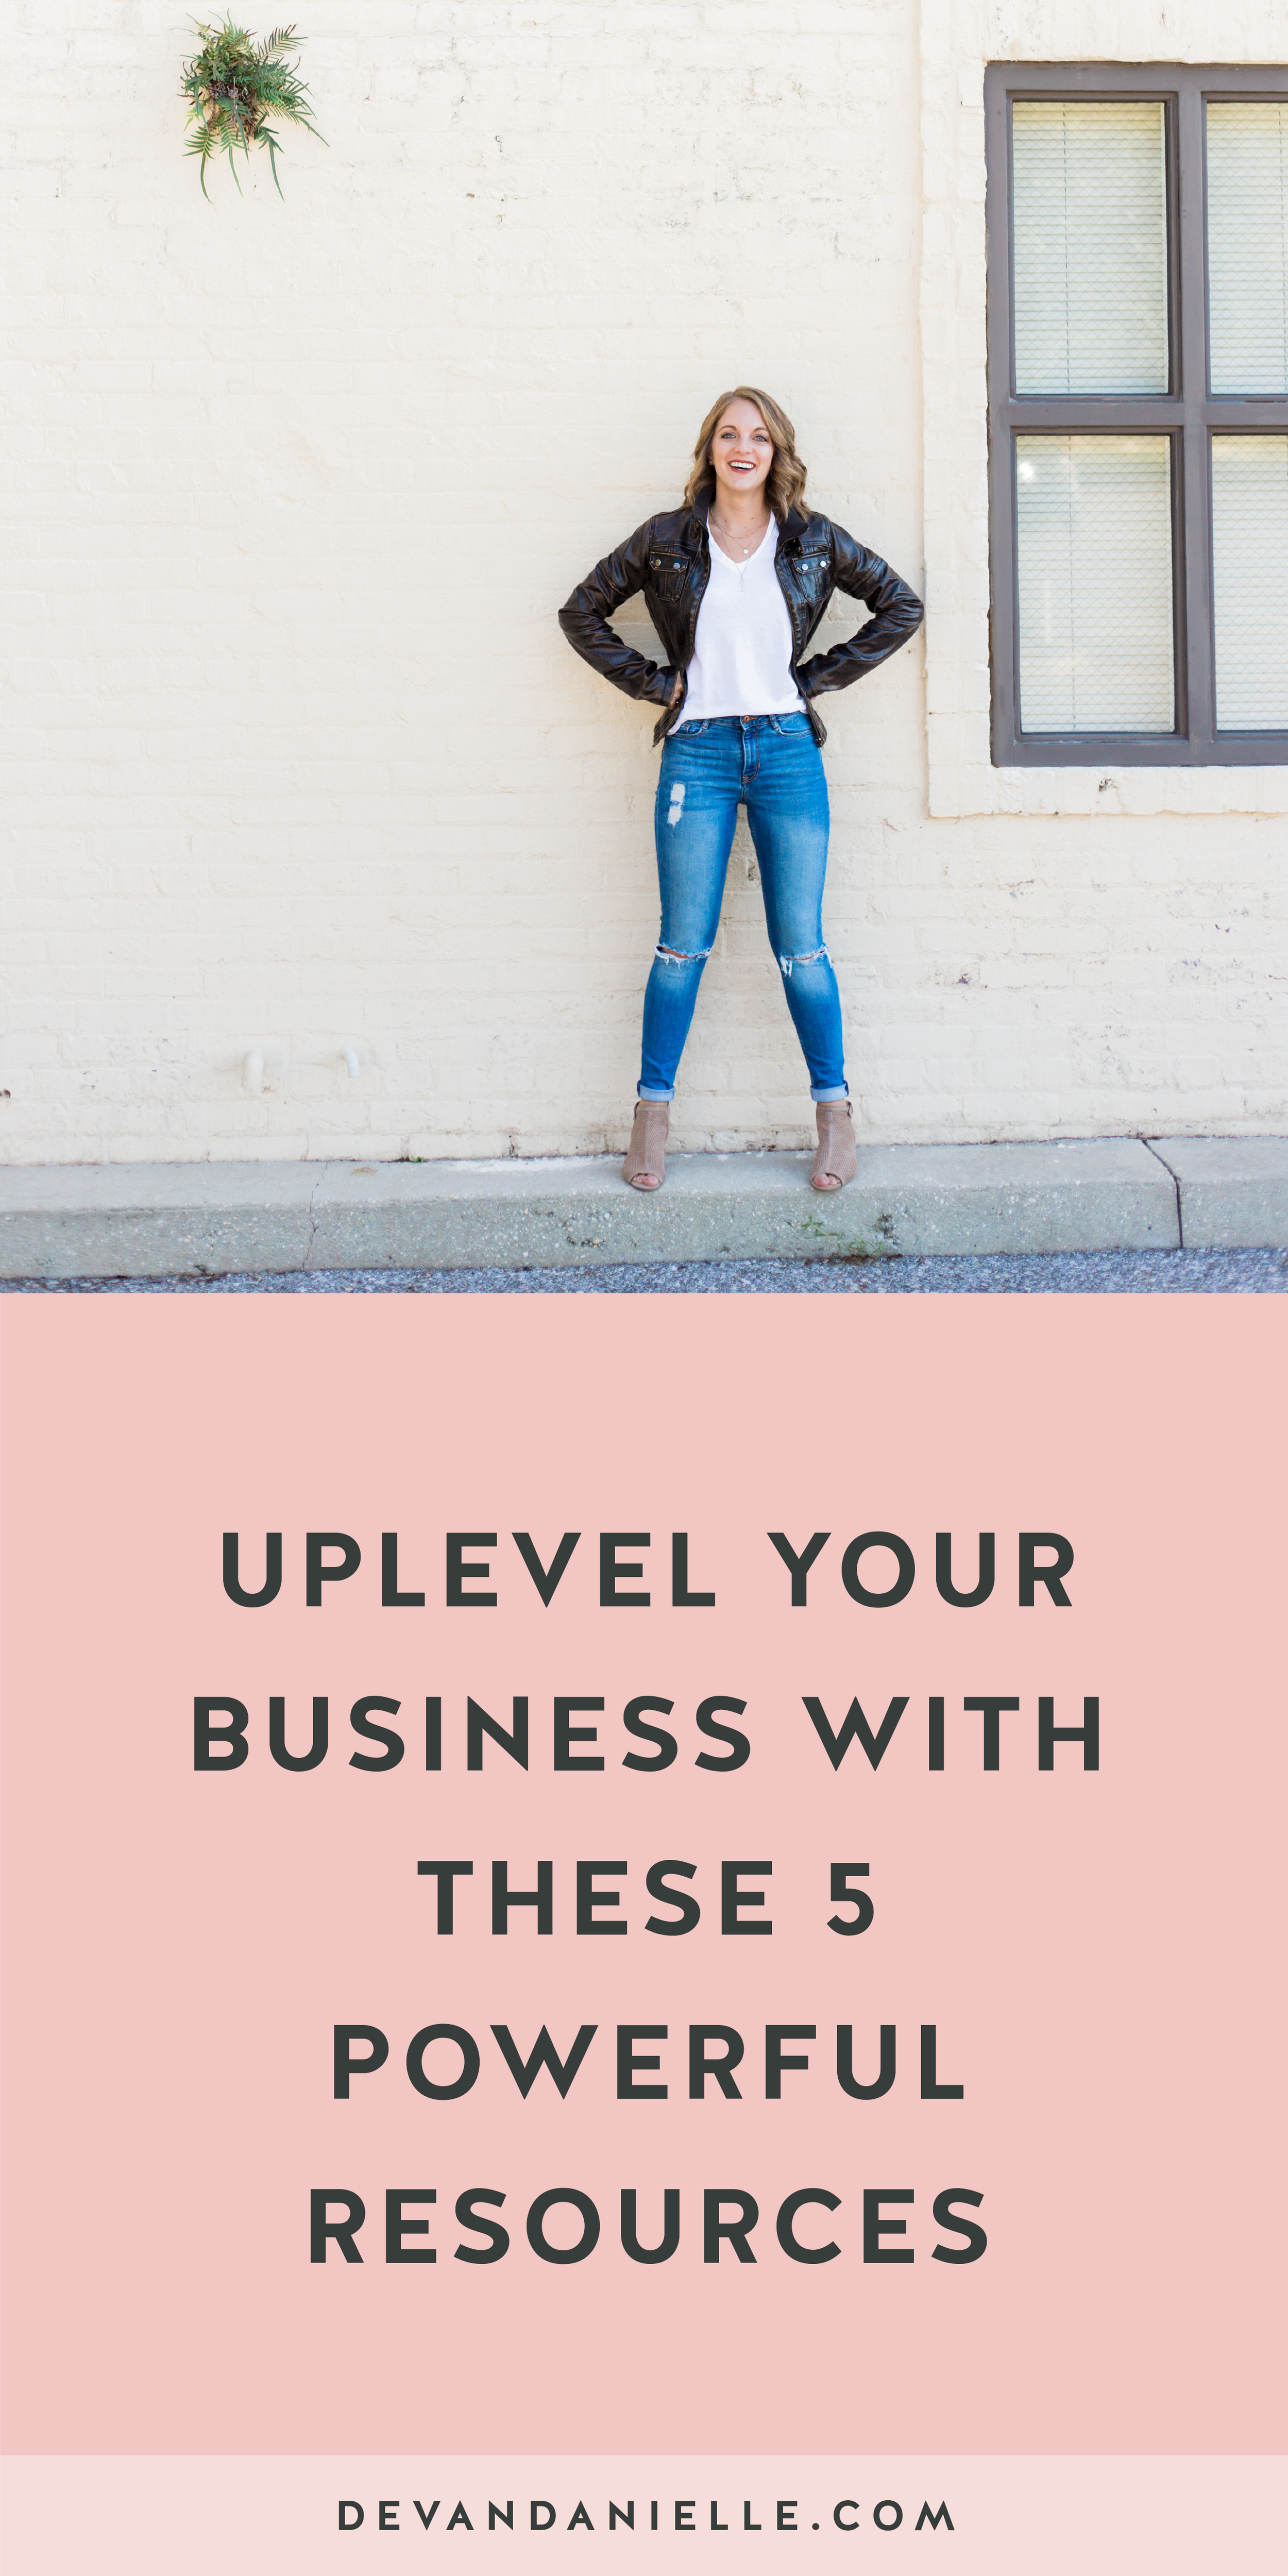 Uplevel-your-business-with-these-5-powerful-resources-01.png